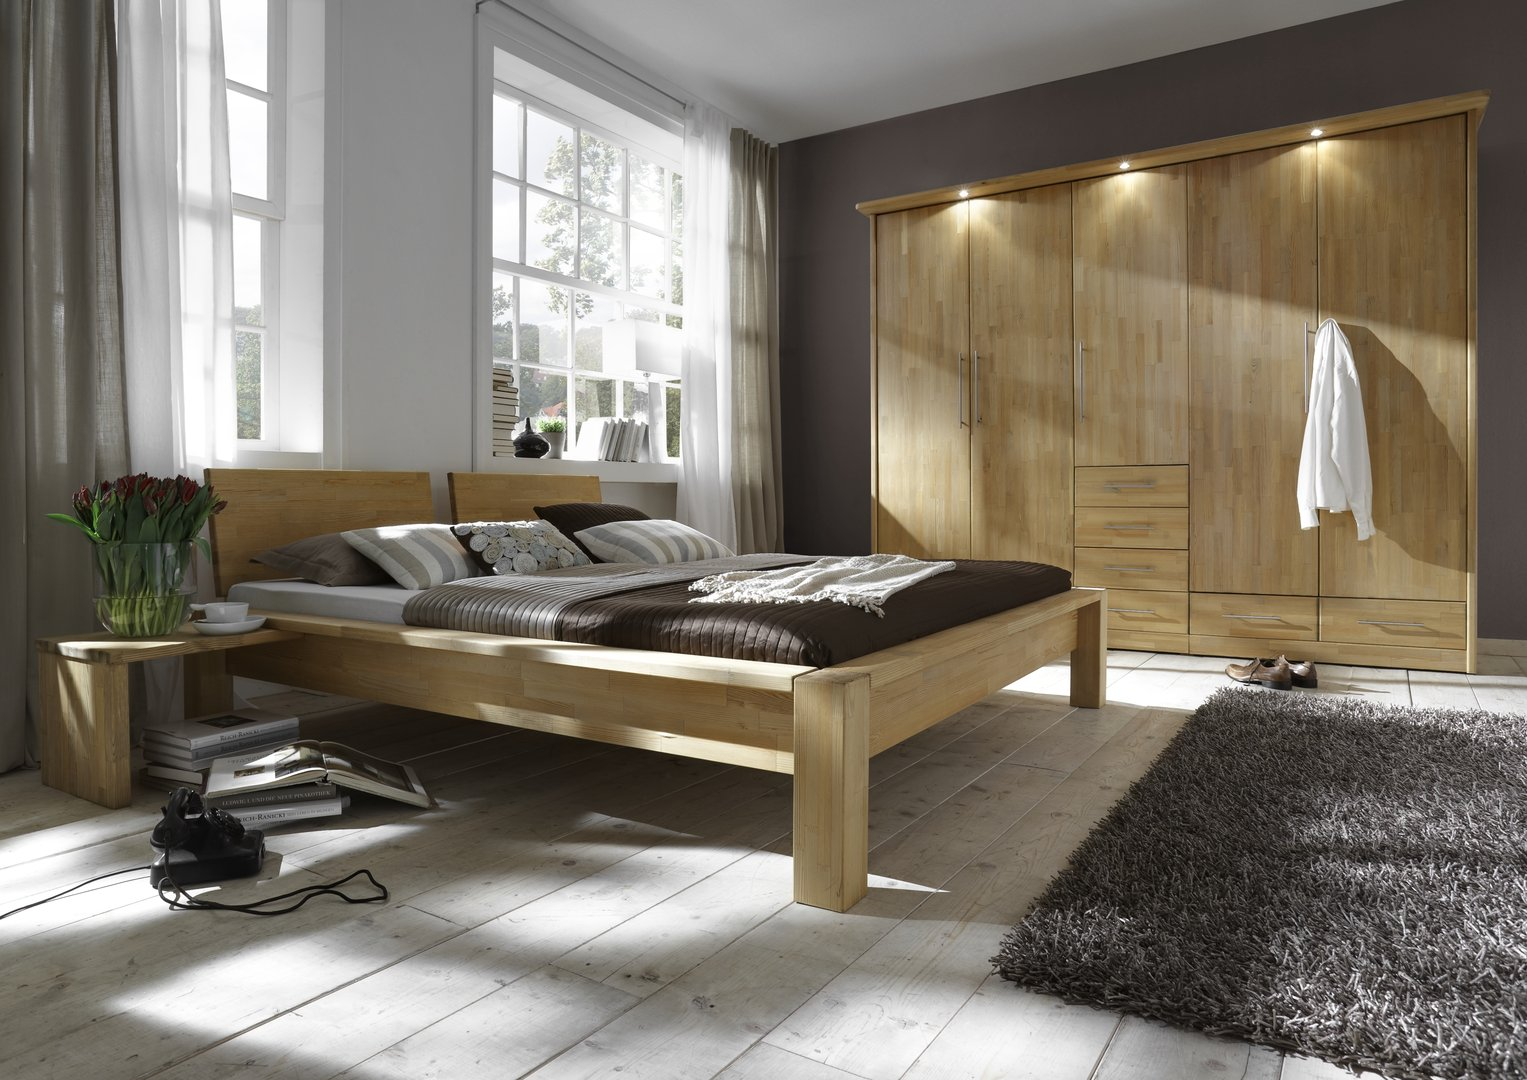 wunsch kleiderschrank kiefer astfrei gelaugt auslaufend. Black Bedroom Furniture Sets. Home Design Ideas